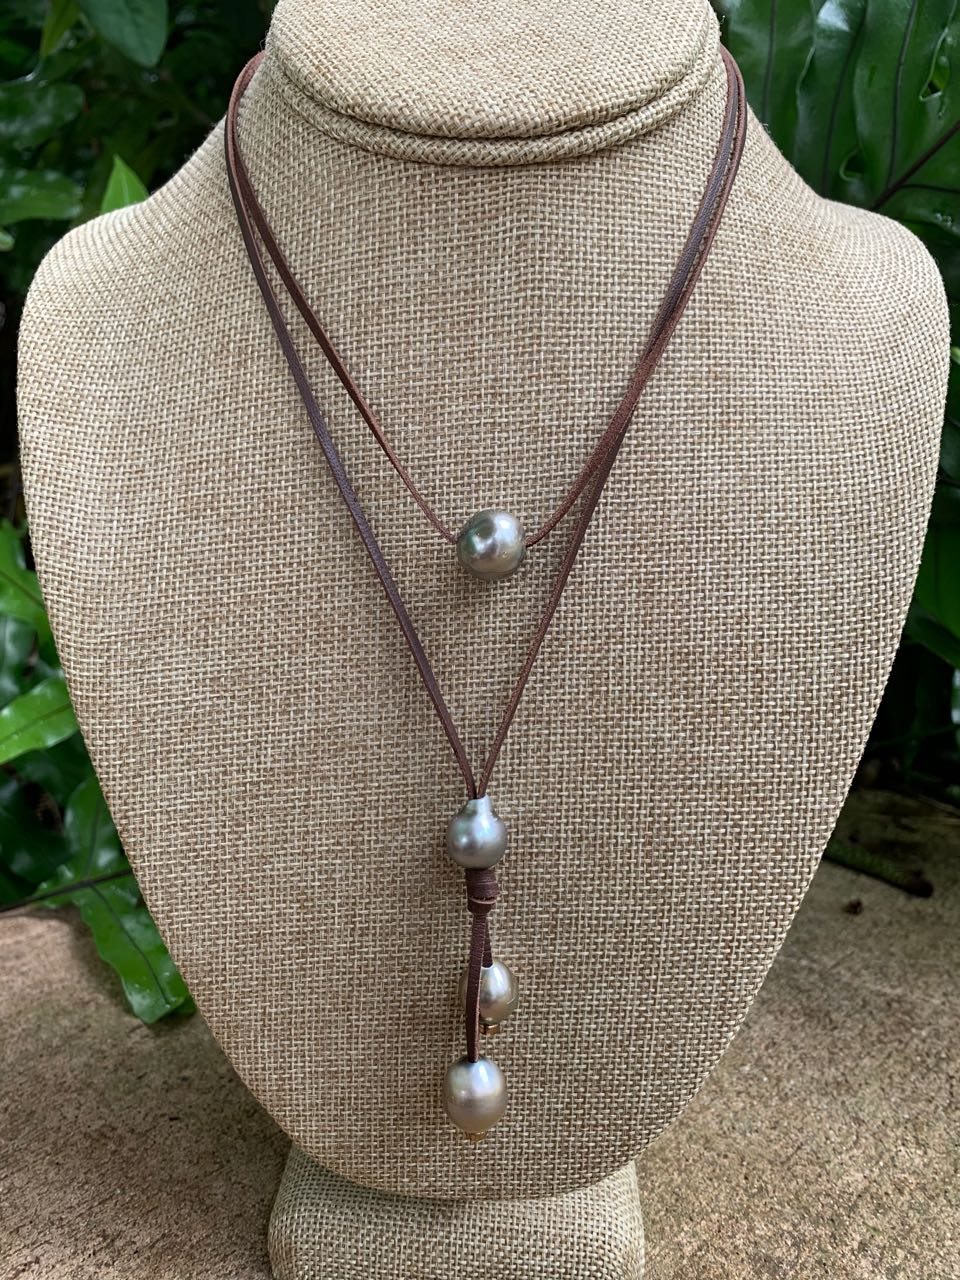 Fafaloha: Hana Necklace with Five Tahitian Pearls & Leather